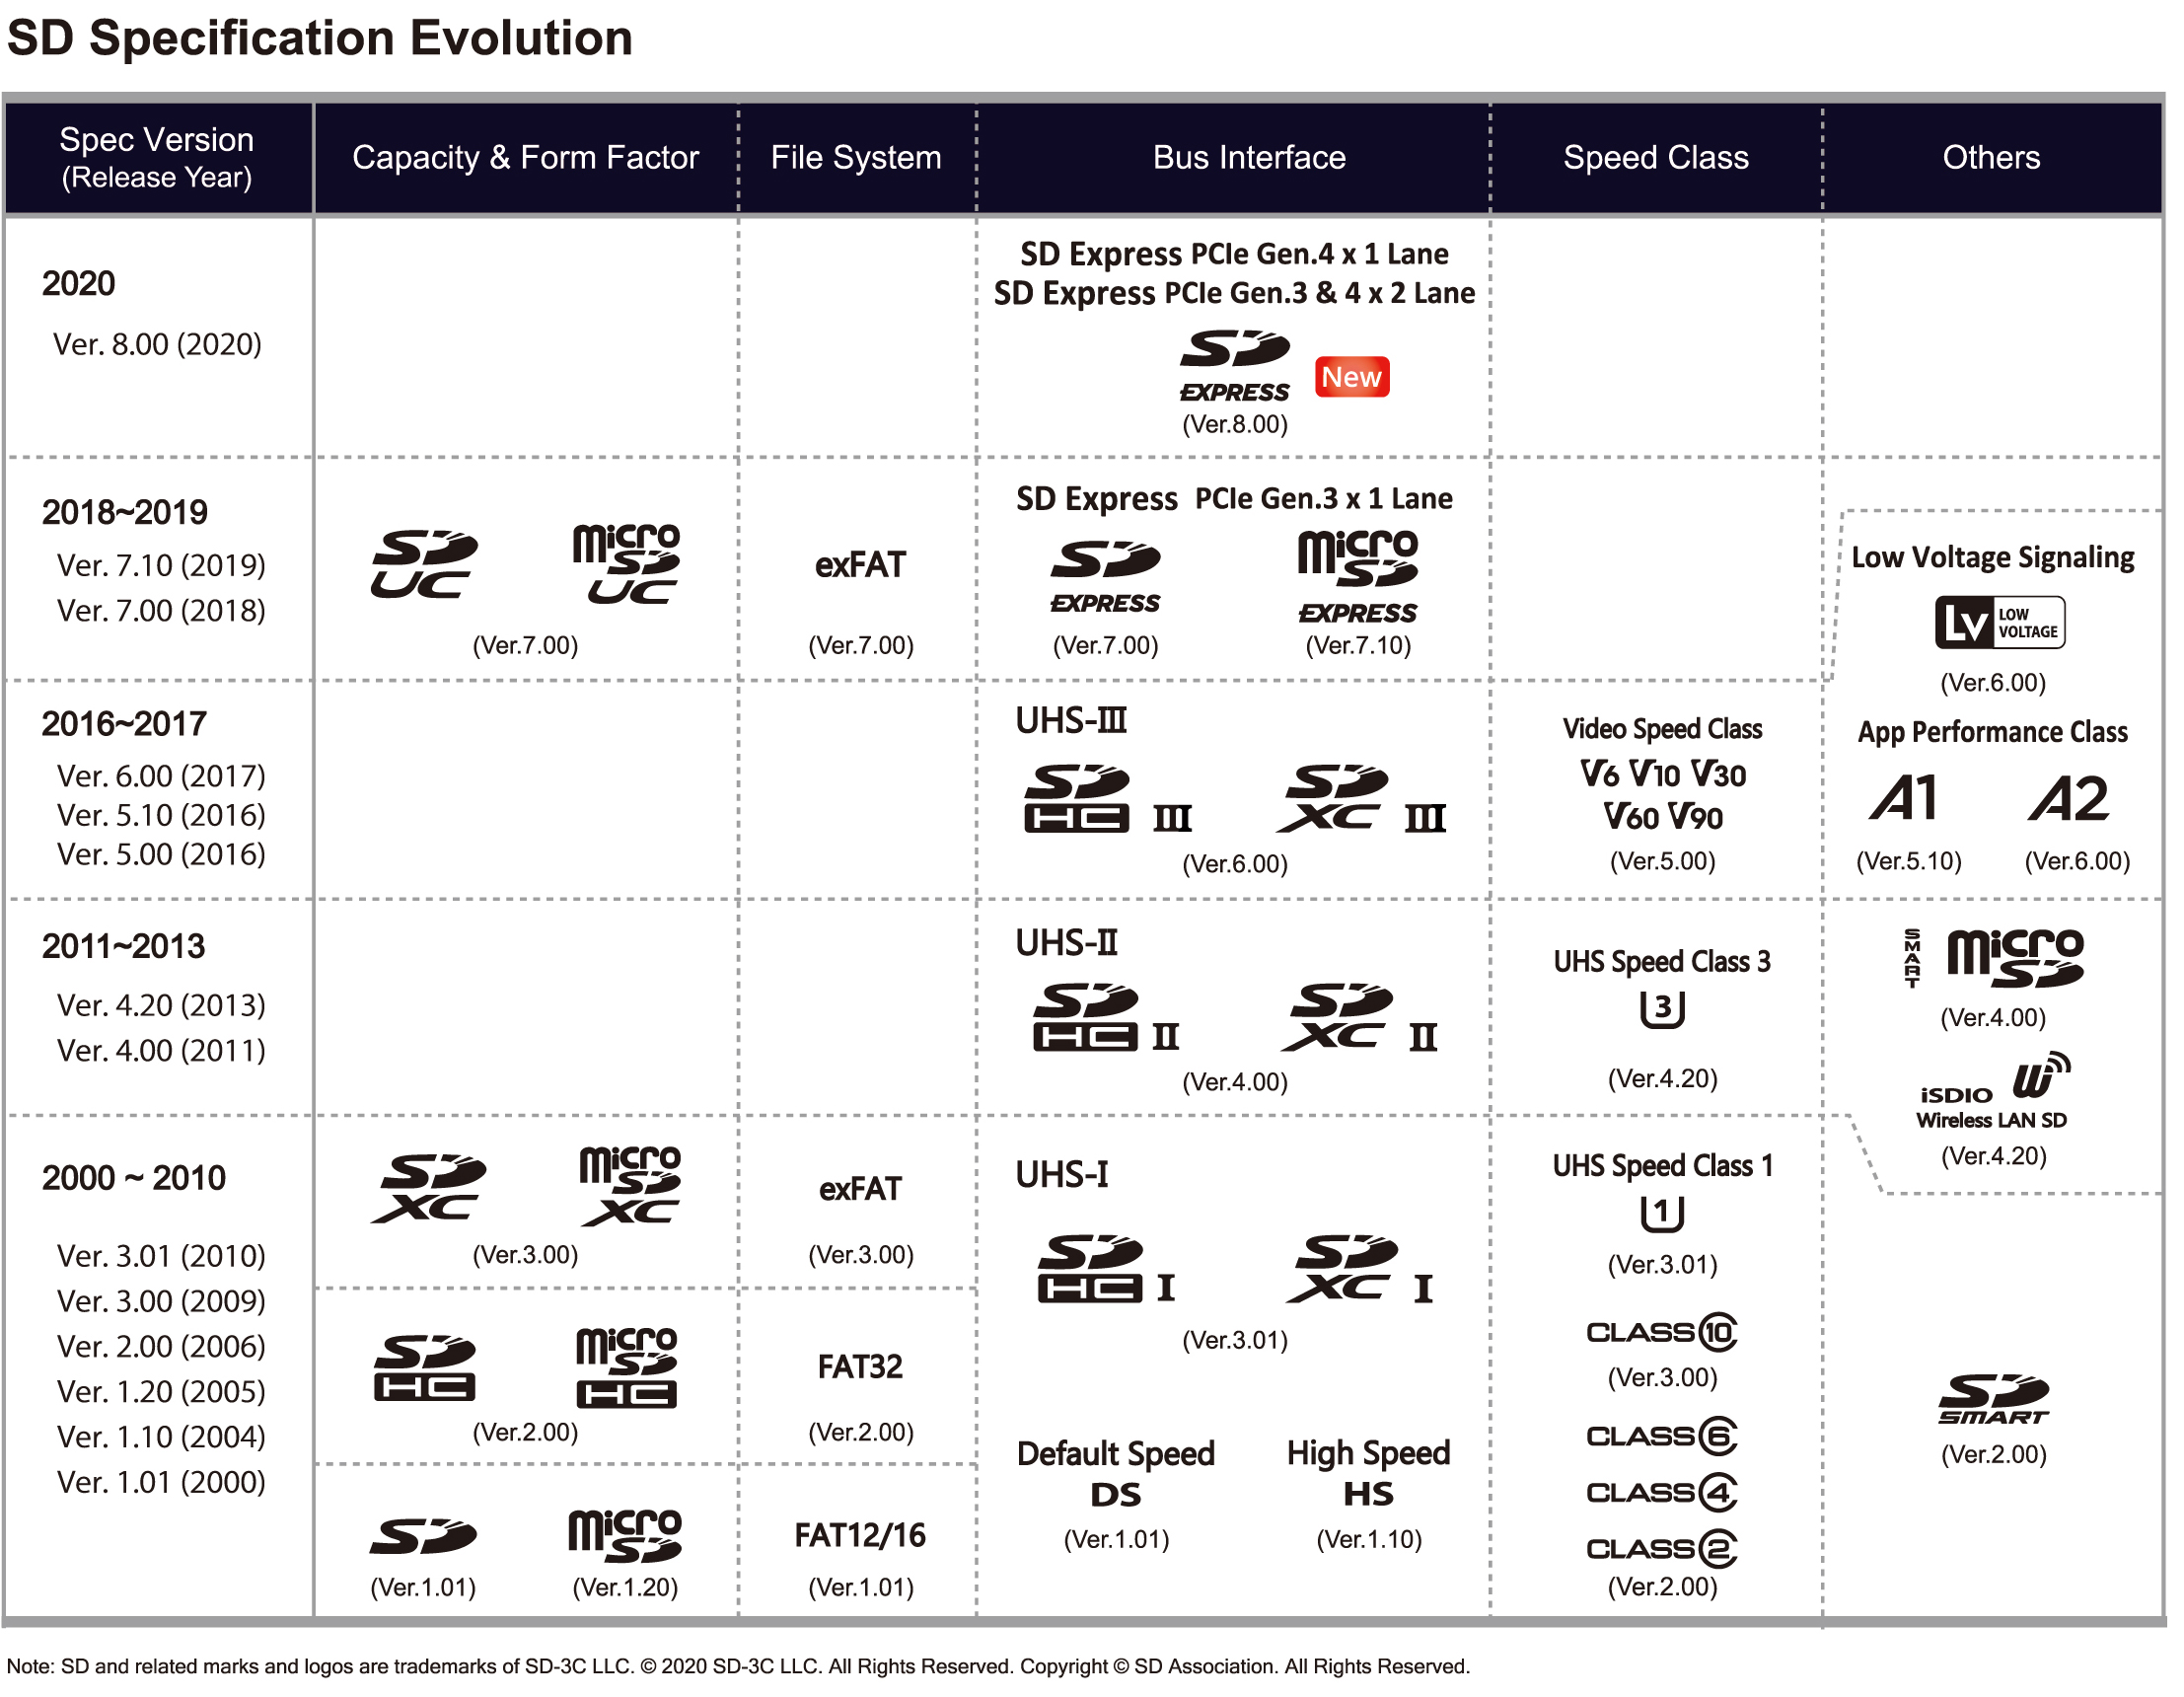 SD Specification Evolution